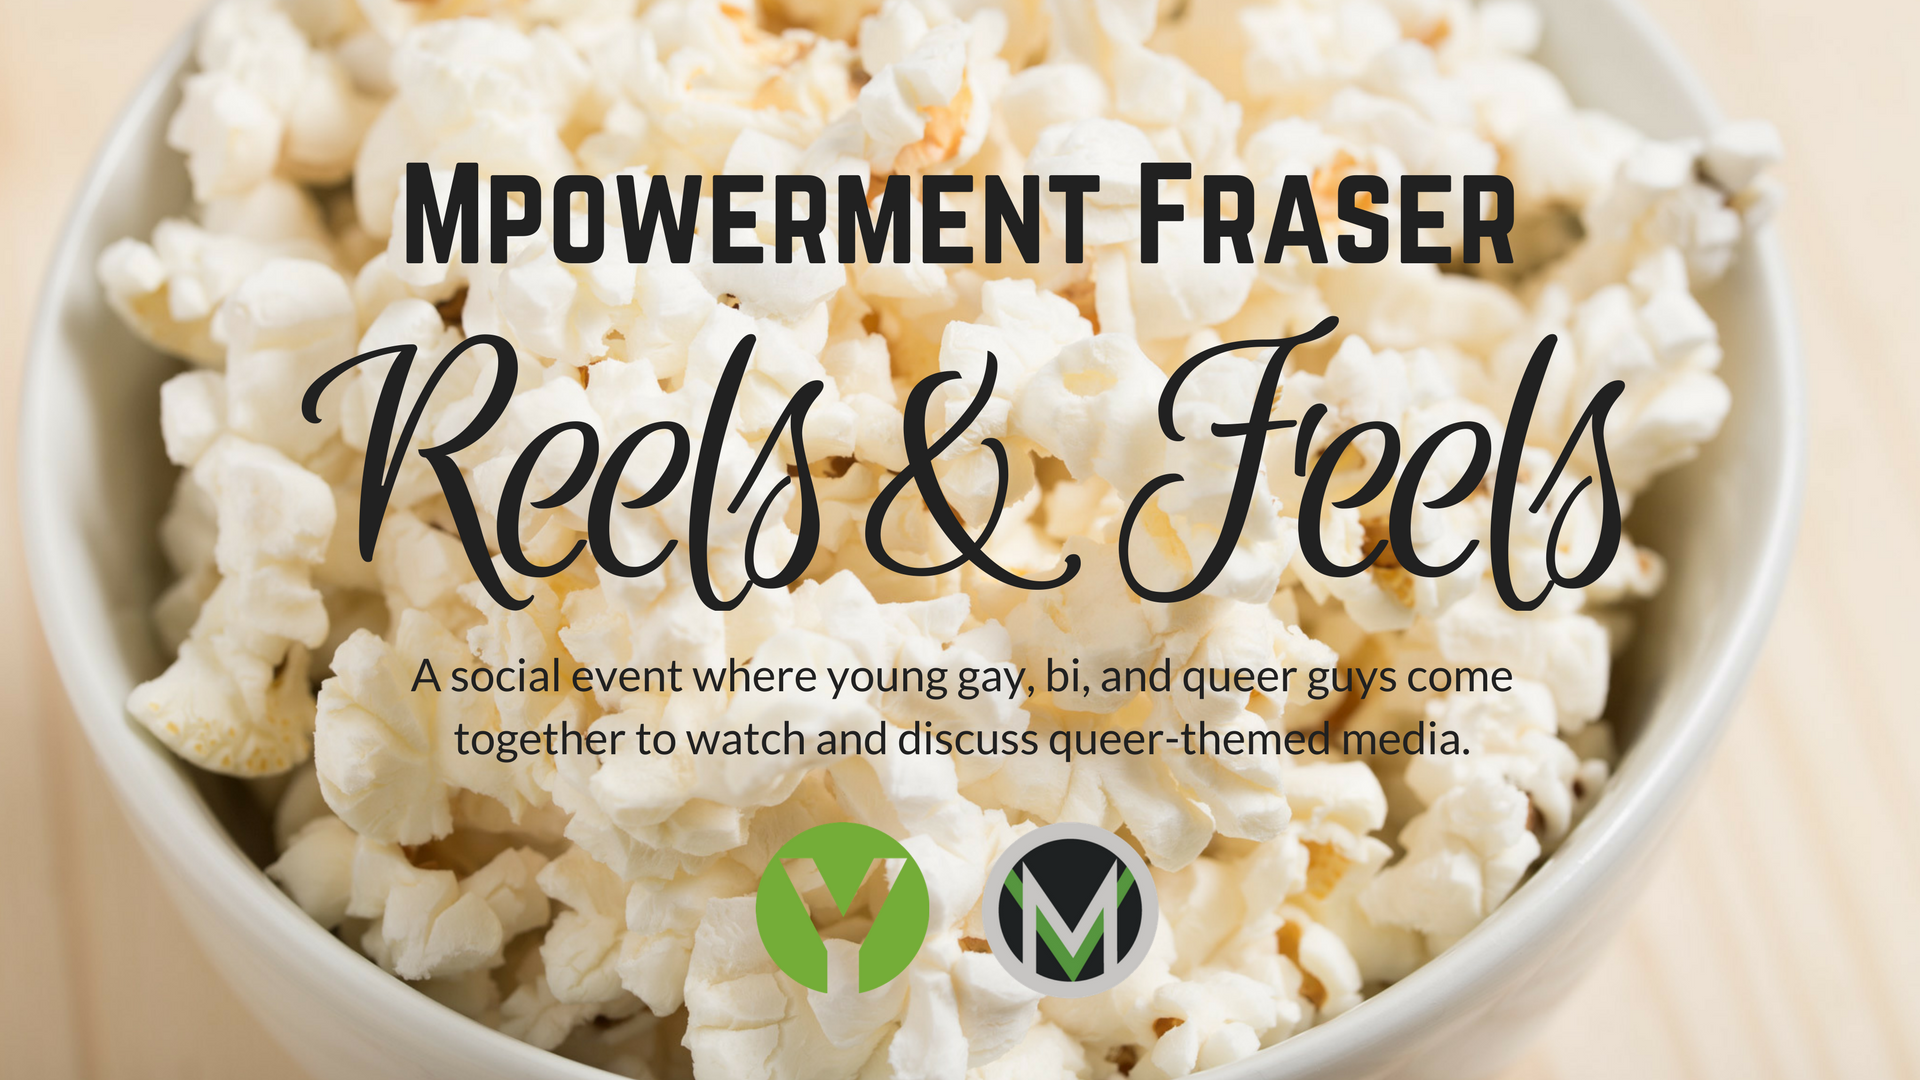 Facebook_Cover_Mpowerment_Fraser_Reels_and_Feels.png